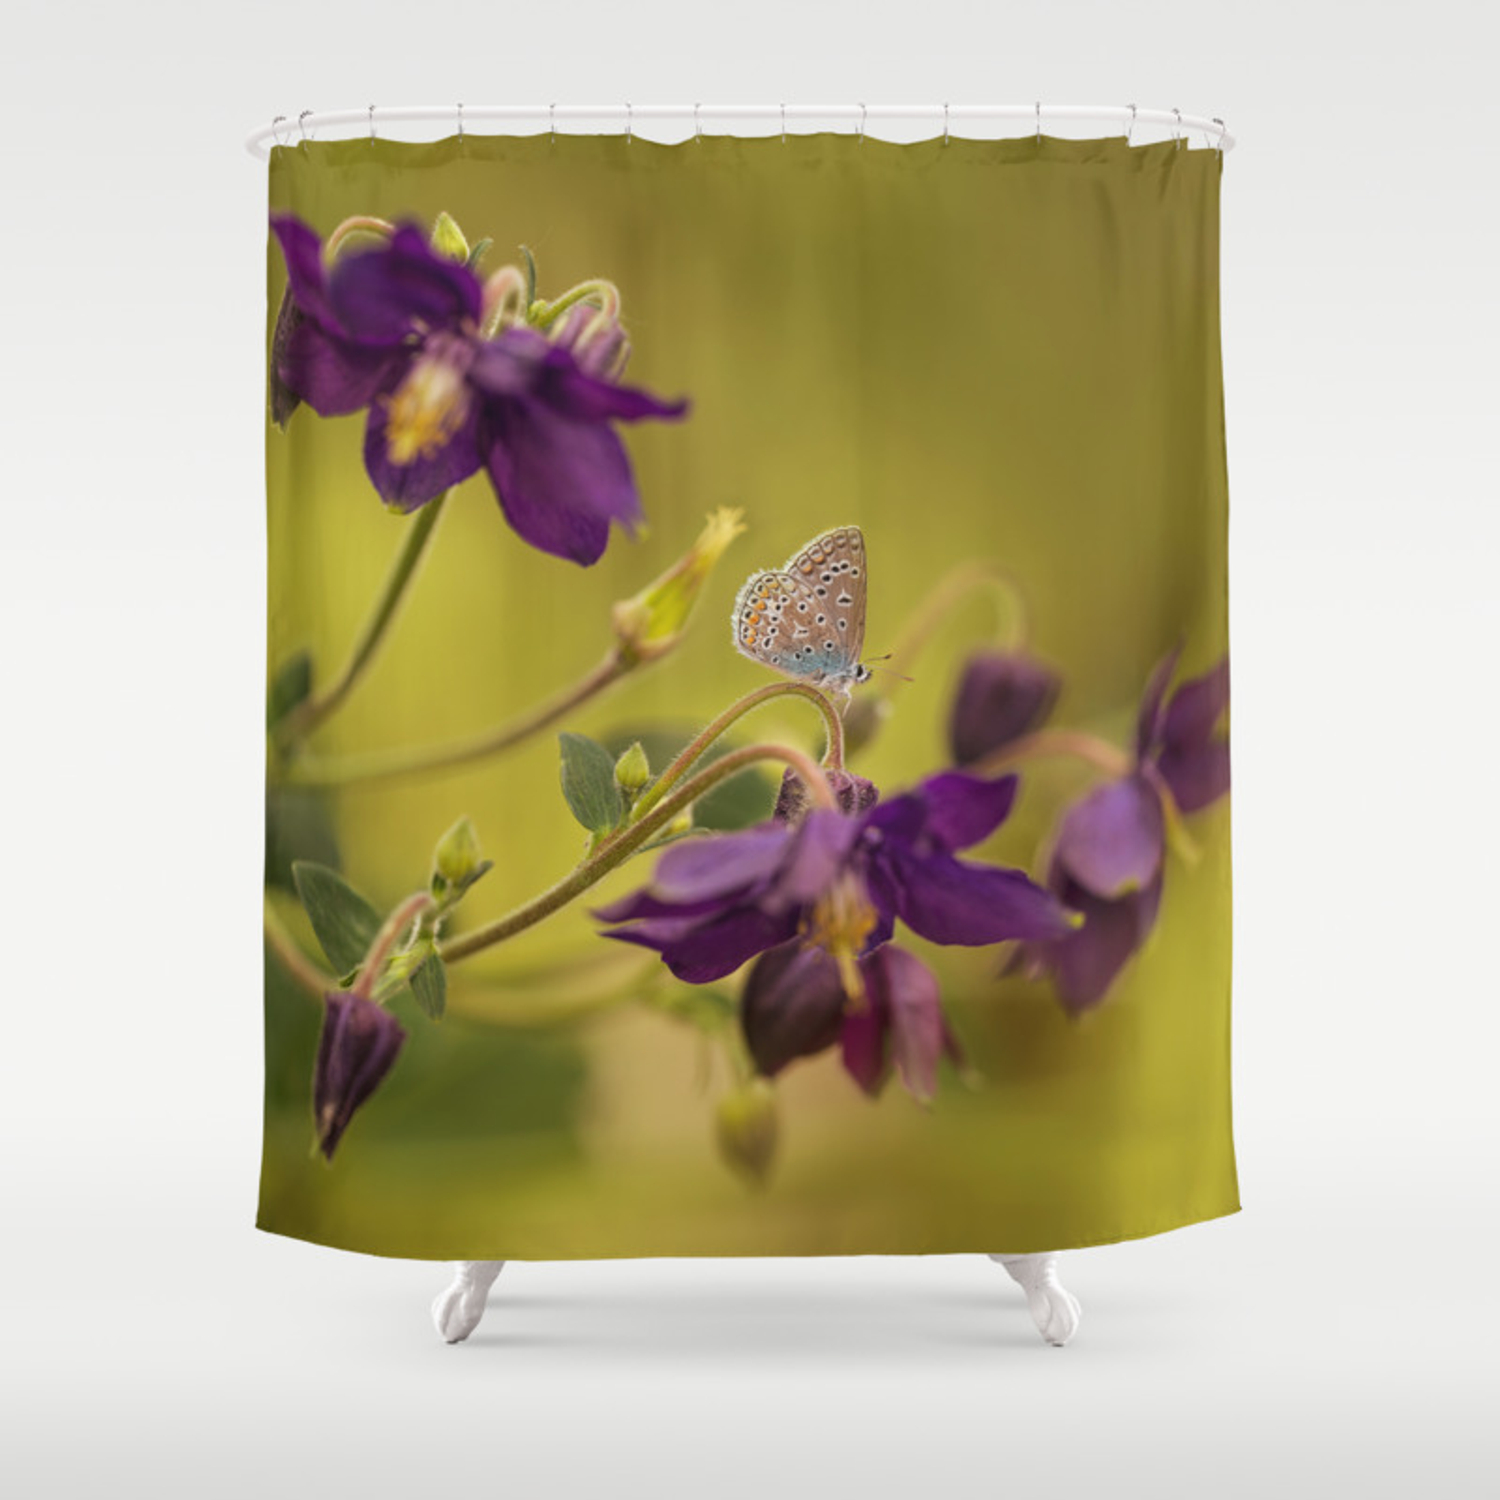 Purple Columbine Flowers With Small Butterfly Shower Curtain By